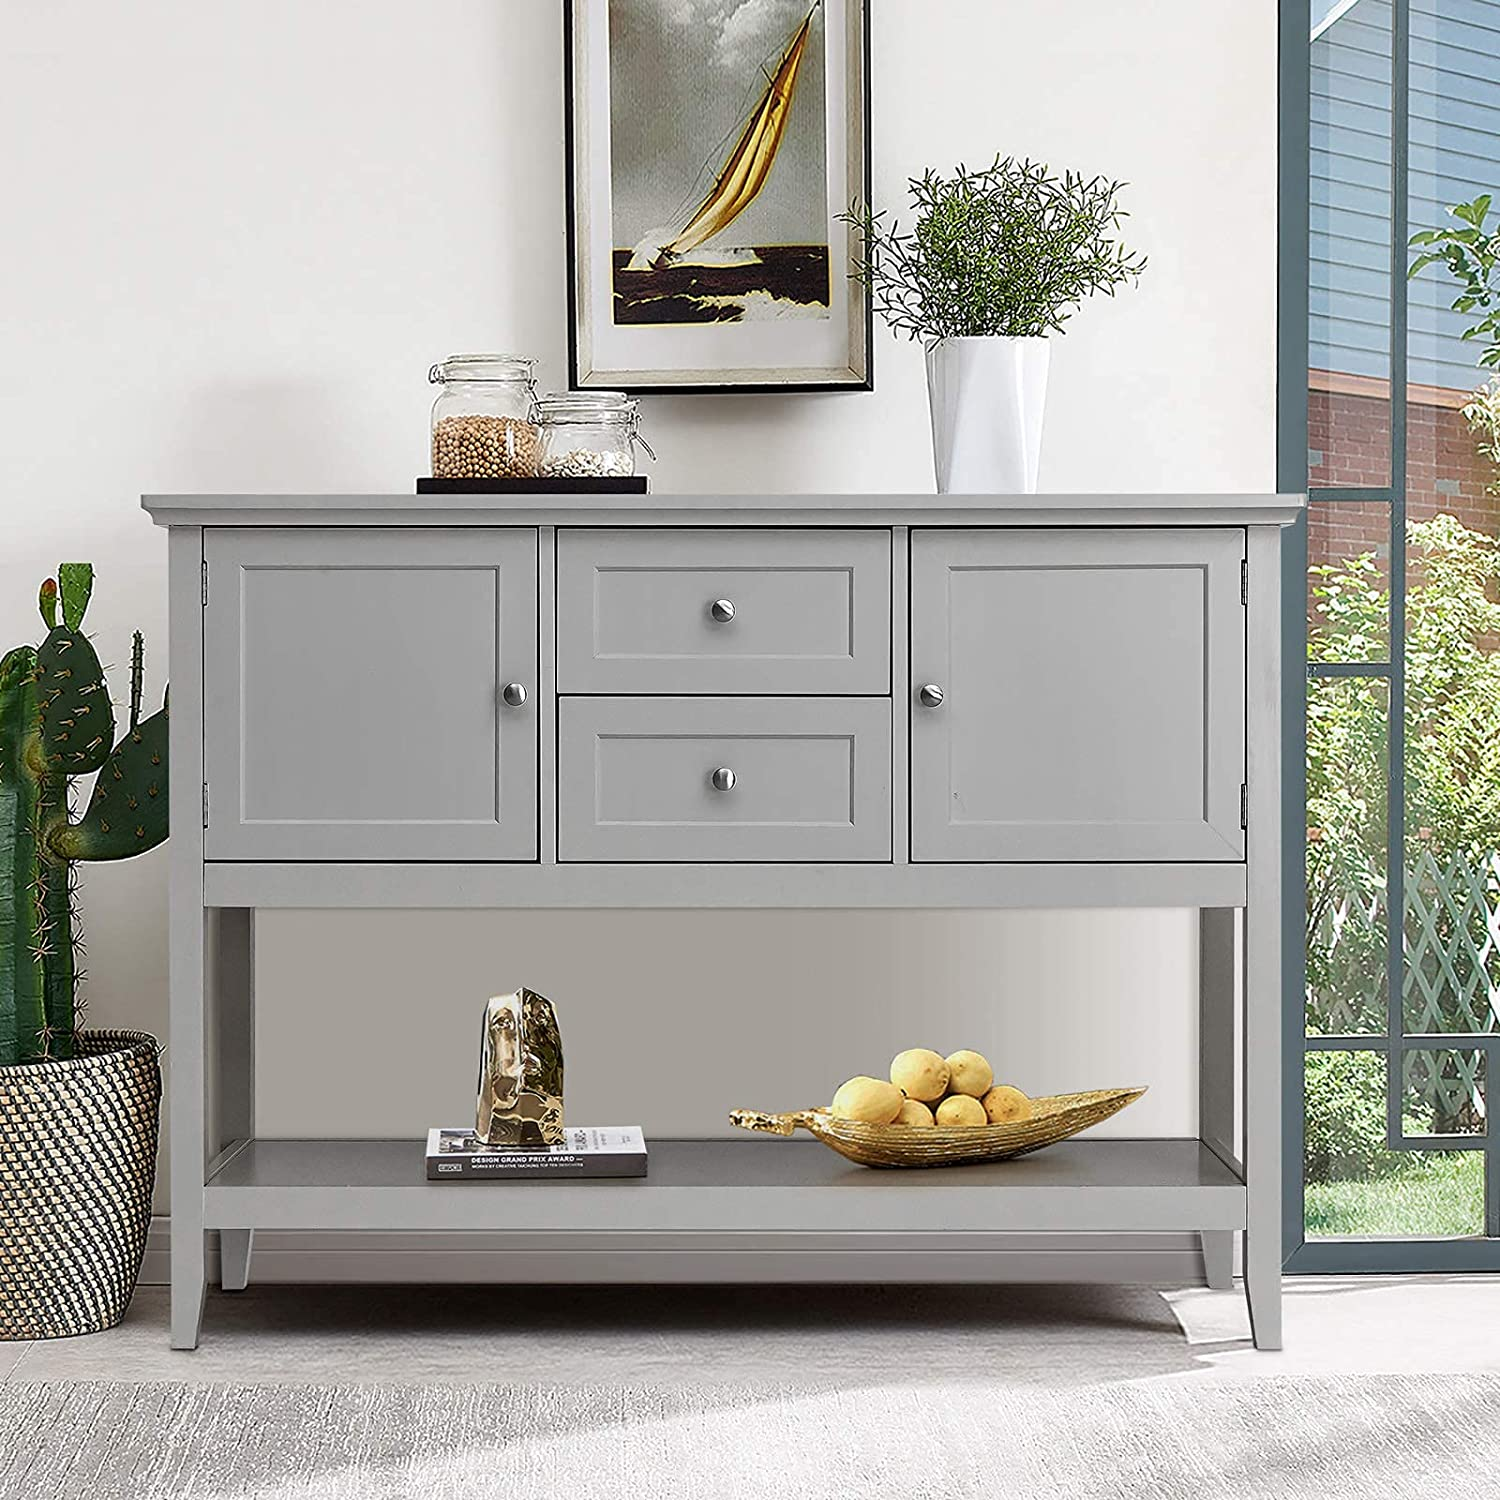 ReunionG Modern Buffet Sideboard Console w Ranking TOP6 Entryway Table Max 69% OFF Side